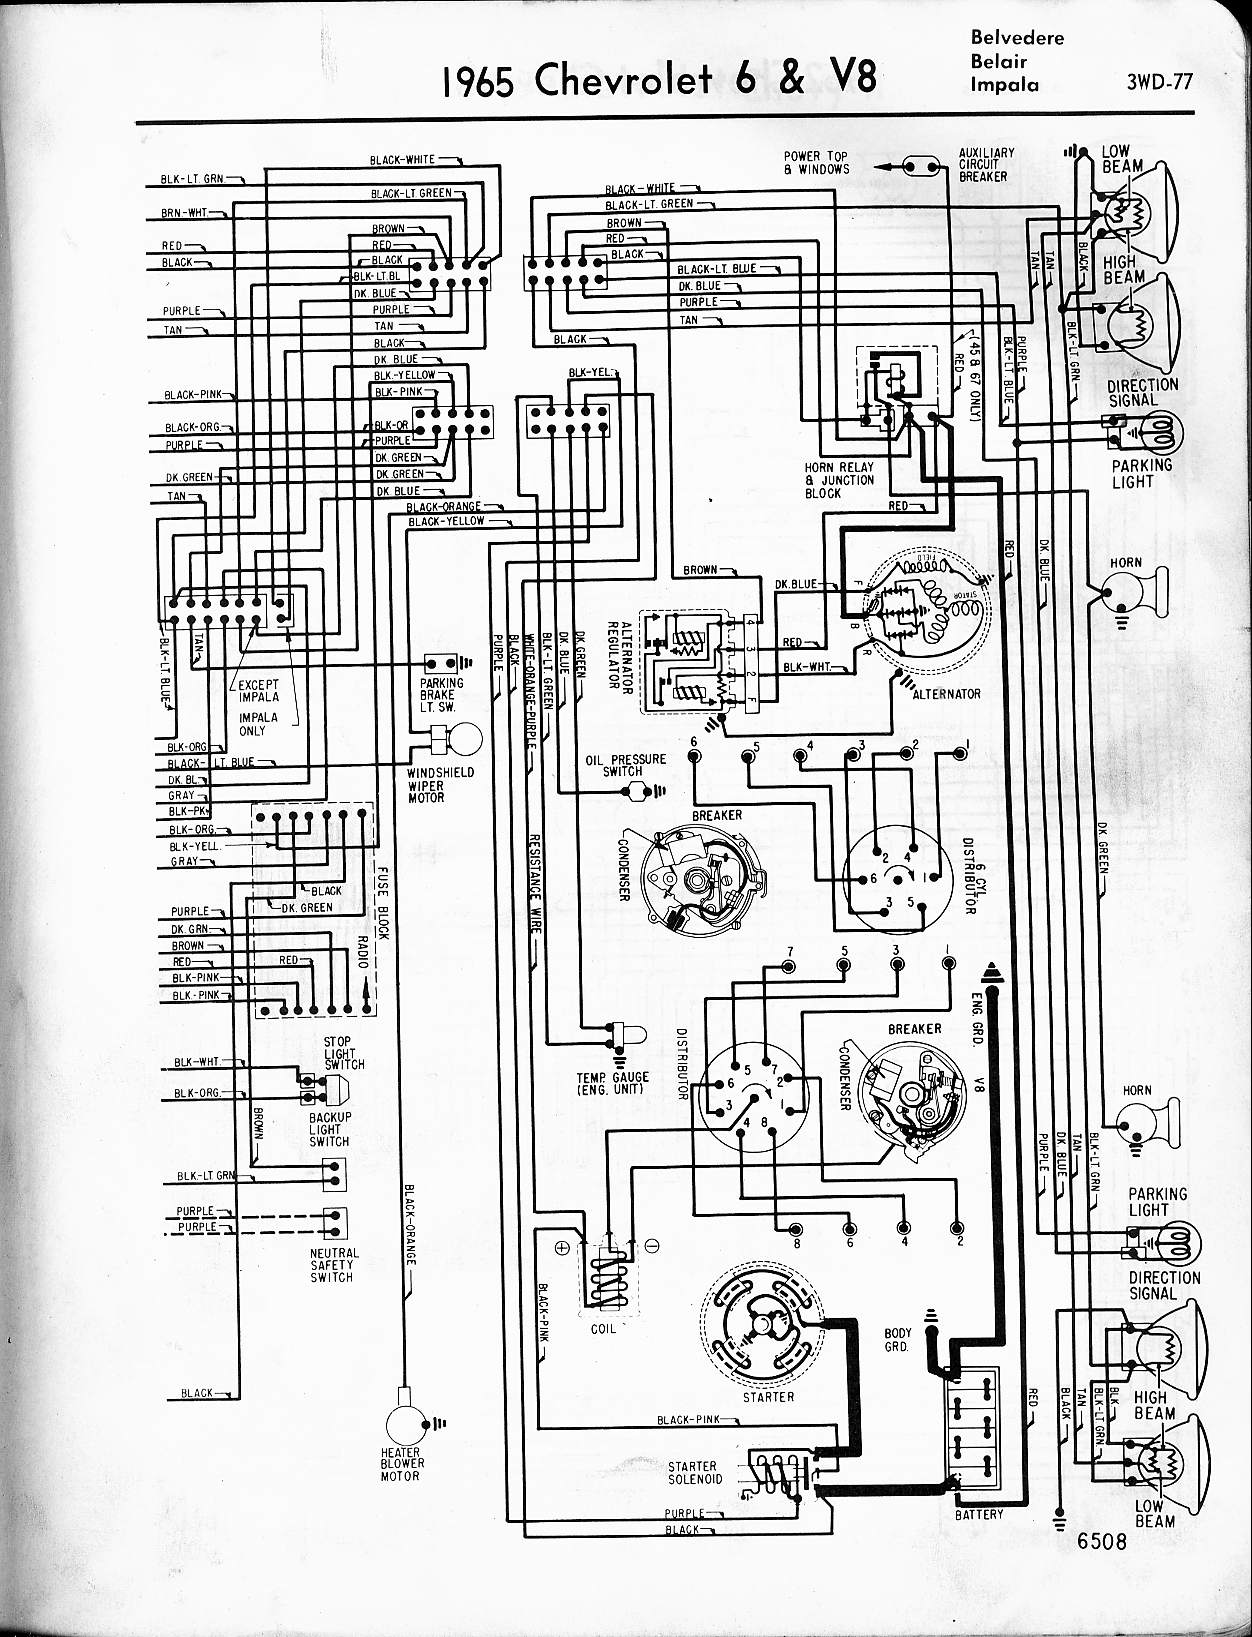 1965 impala wiring diagram online schematic diagram u2022 rh holyoak co 1968 C10 Wiring-Diagram 1965 C10 Wiring-Diagram